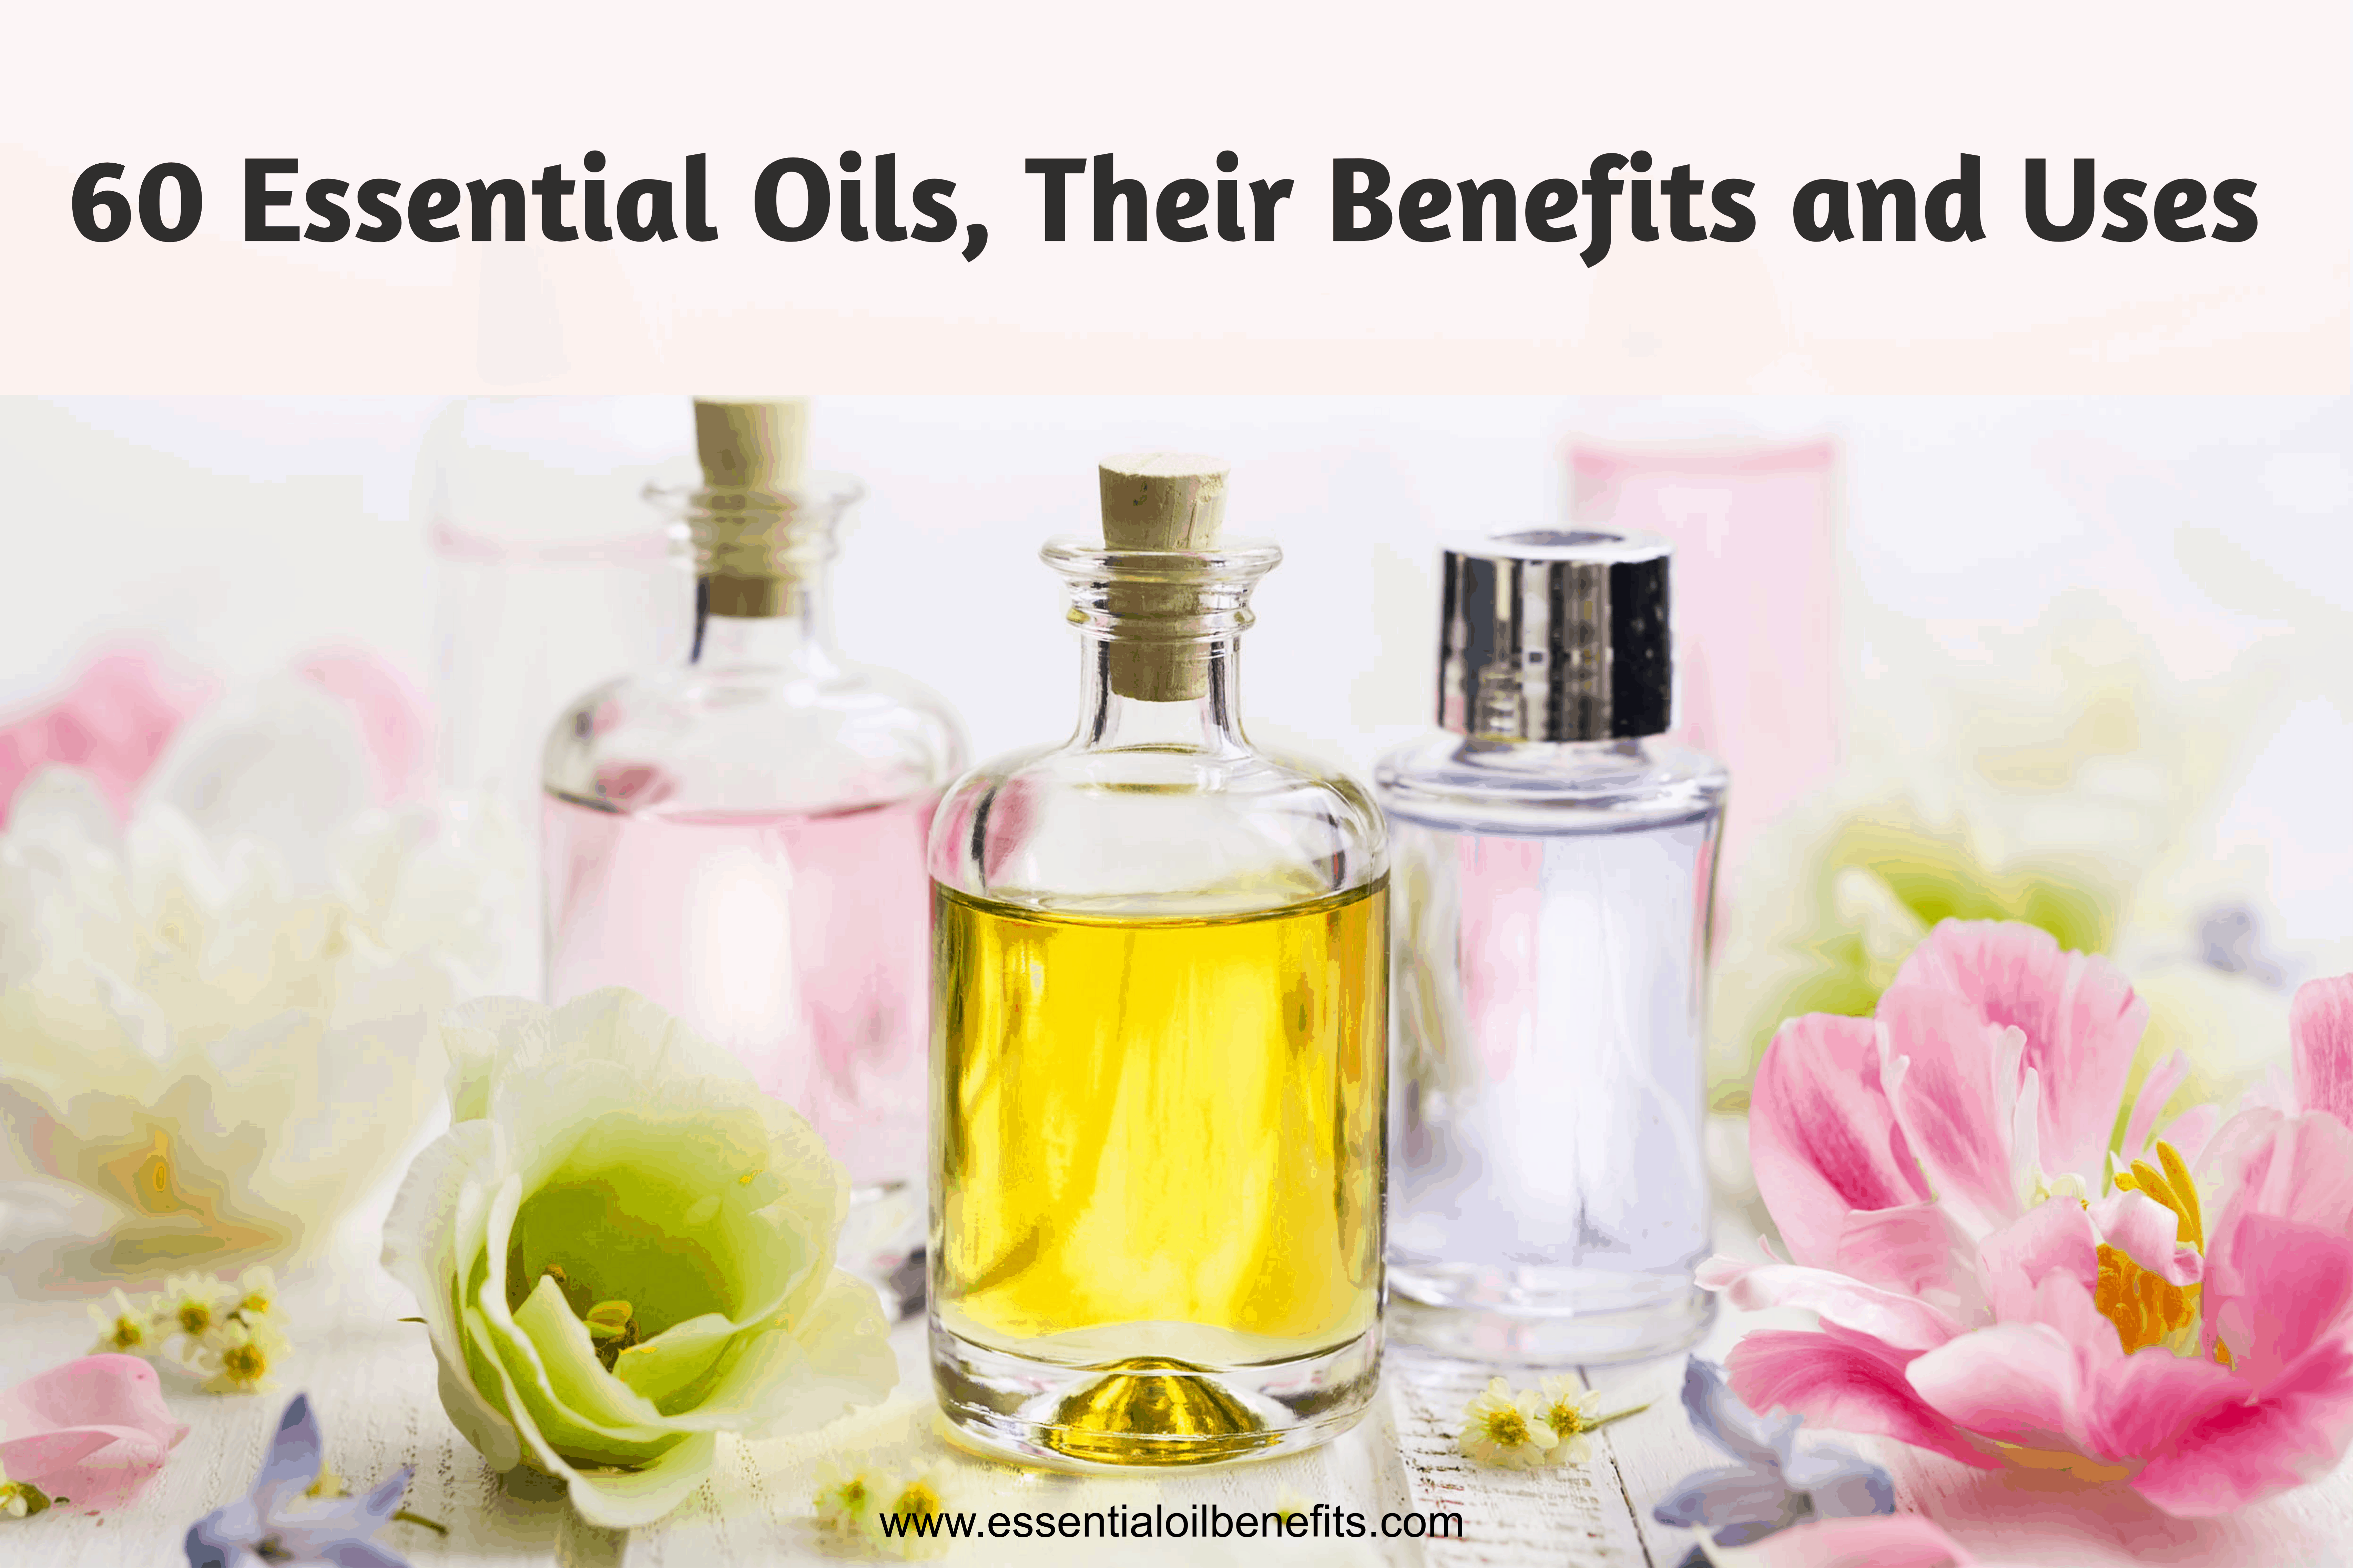 This is a picture of Modest Printable List of Essential Oils and Their Uses